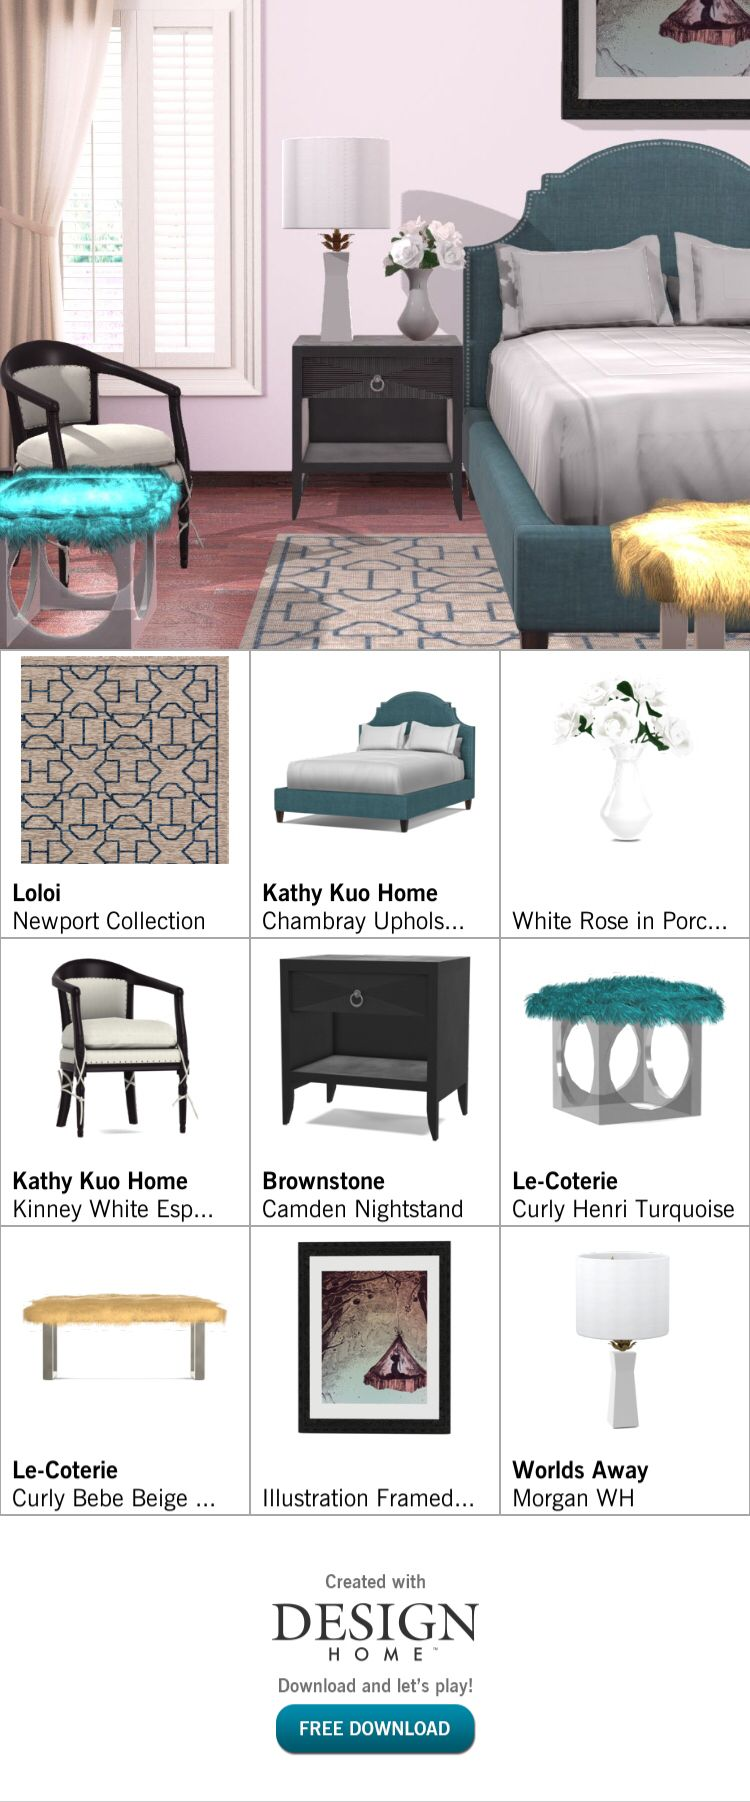 Created with design home outdoor furniture sets decor game house also color theroy rh pinterest